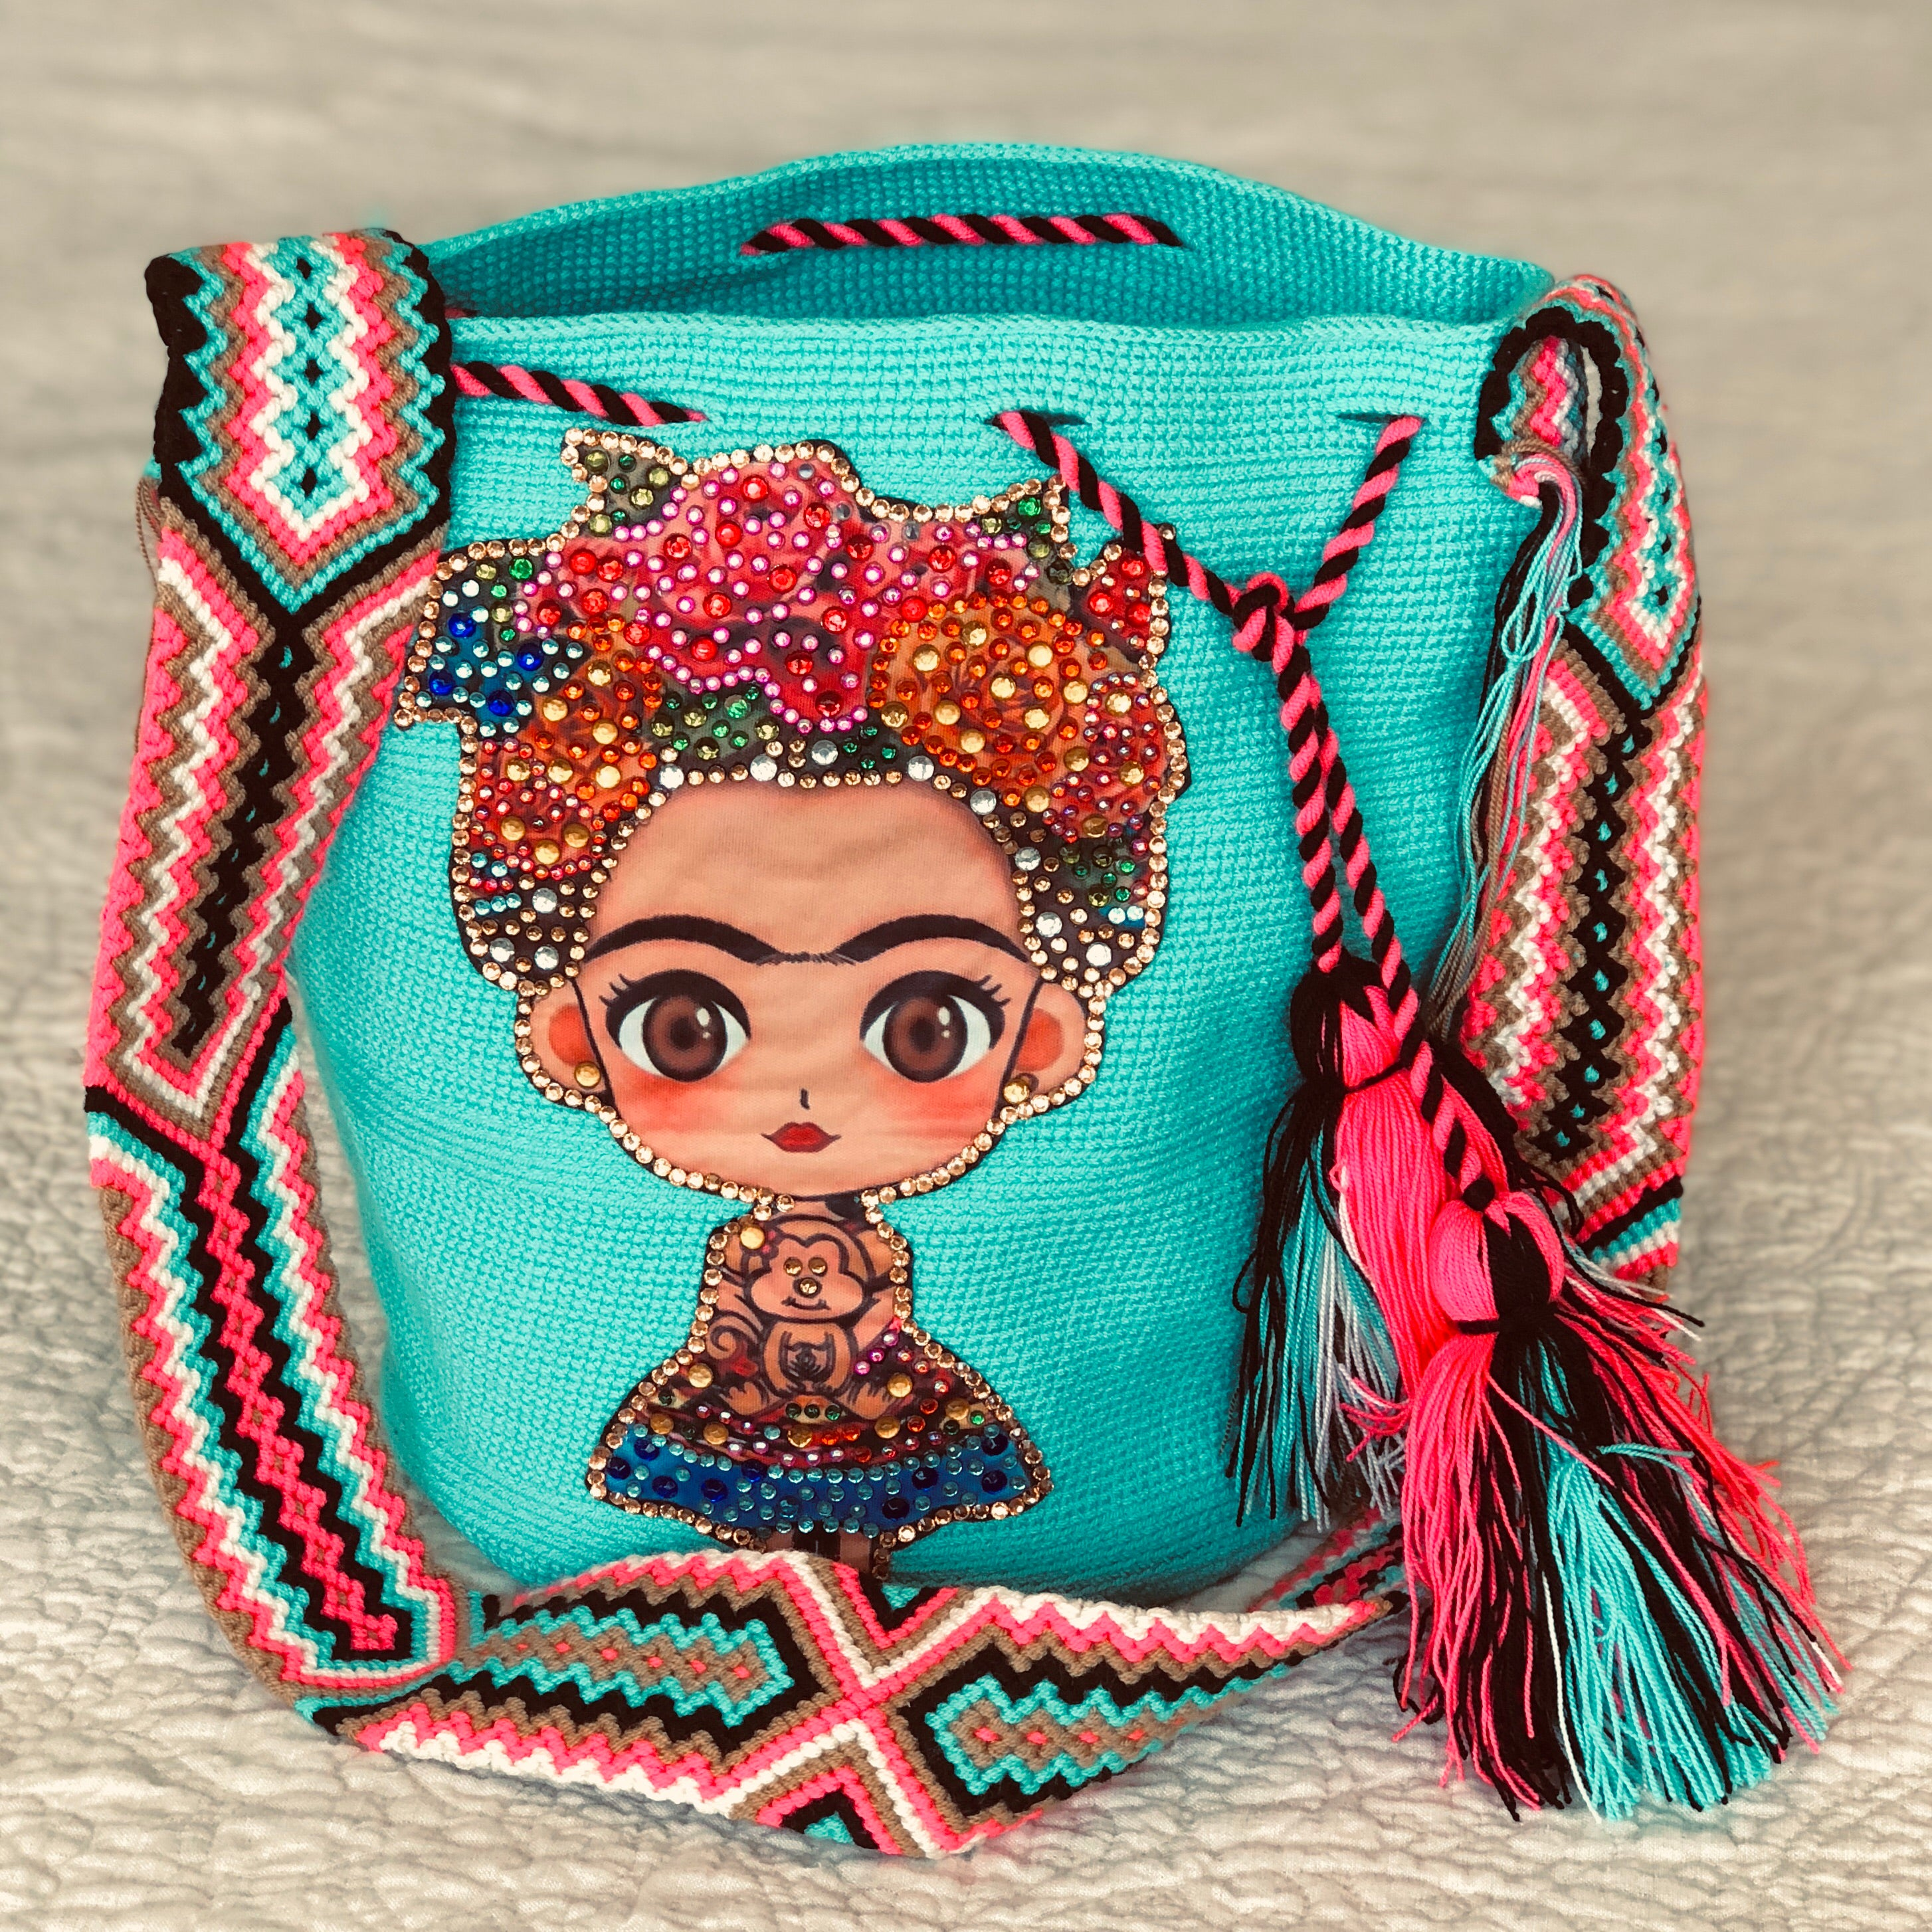 TURQUOISE  FRIDA Inspired Crochet Bag - Crossbody Bucket Bag-Boho -Wayuu